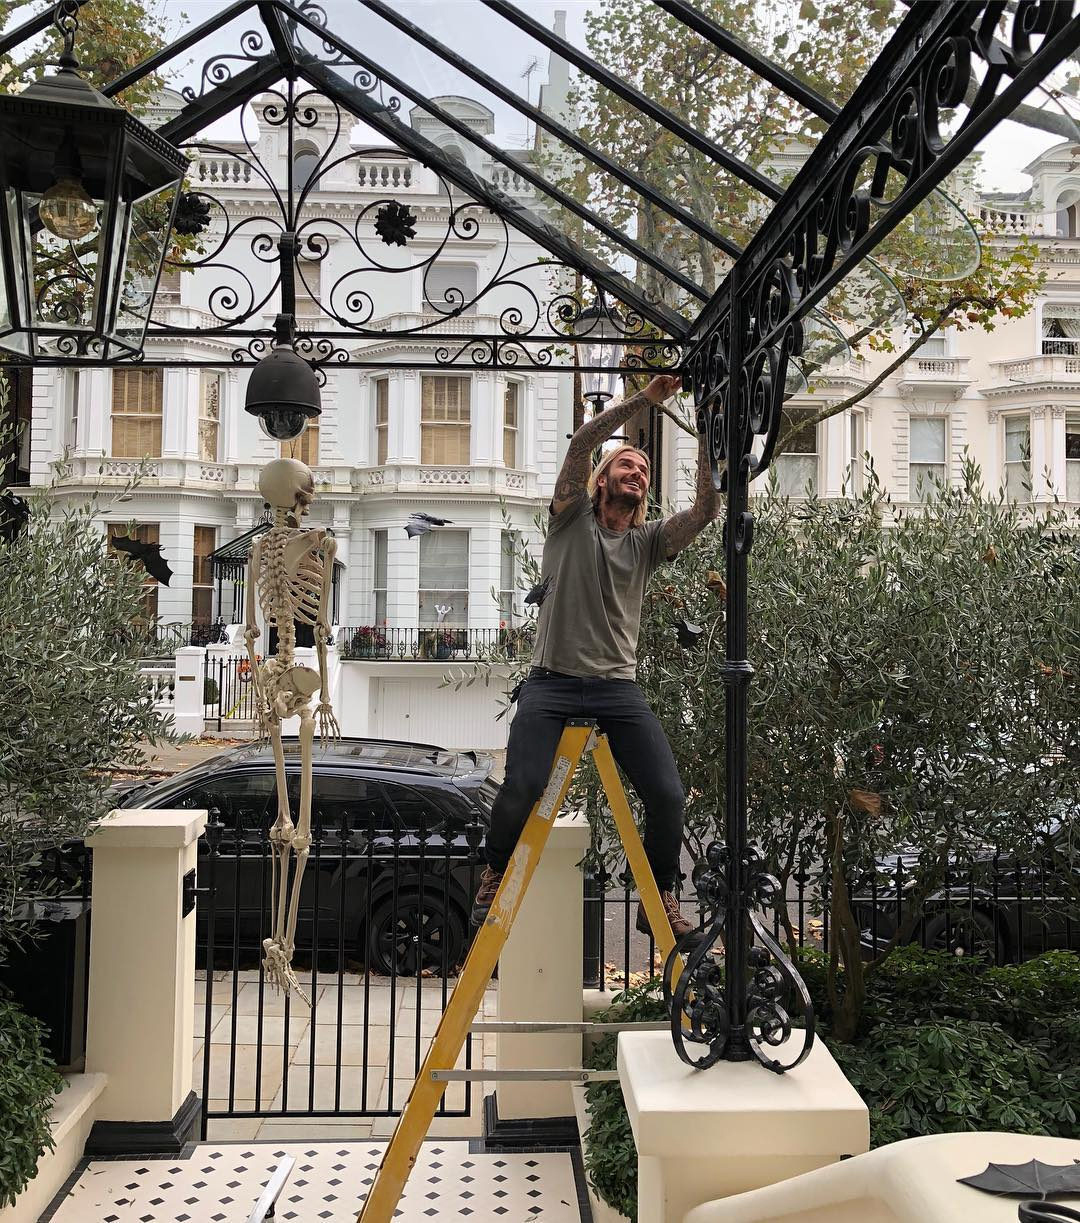 David Beckham goes all out with the Halloween decorating. Image: @victoriabeckham / Instagram